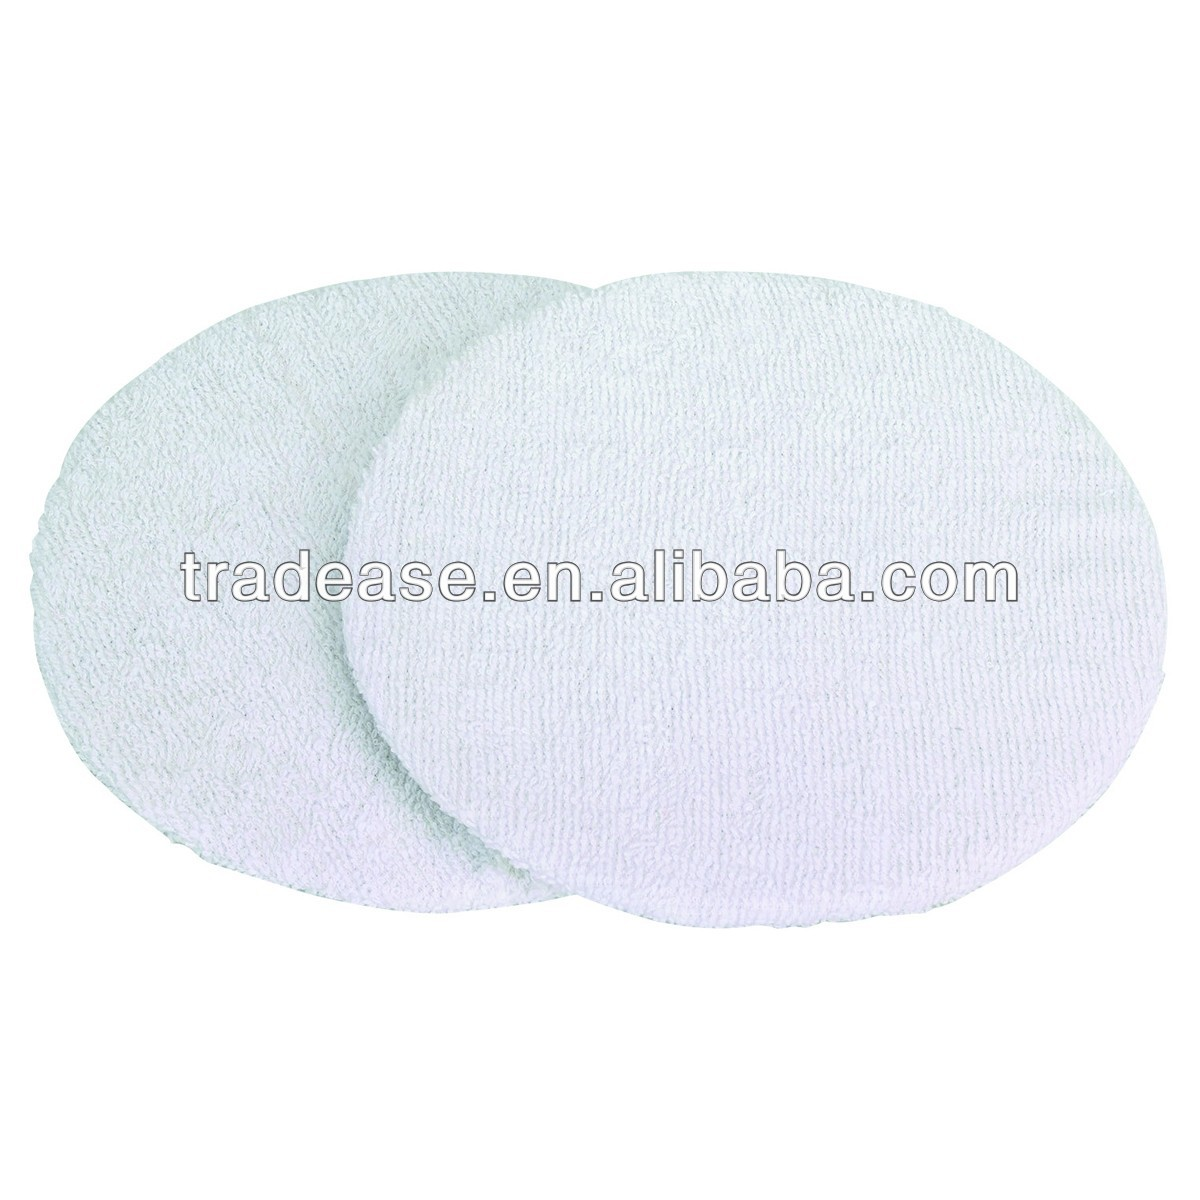 2 Piece 7 In. To 8 In. Terry Cloth Bonnets car polishing bonnet wool polishing bonnet